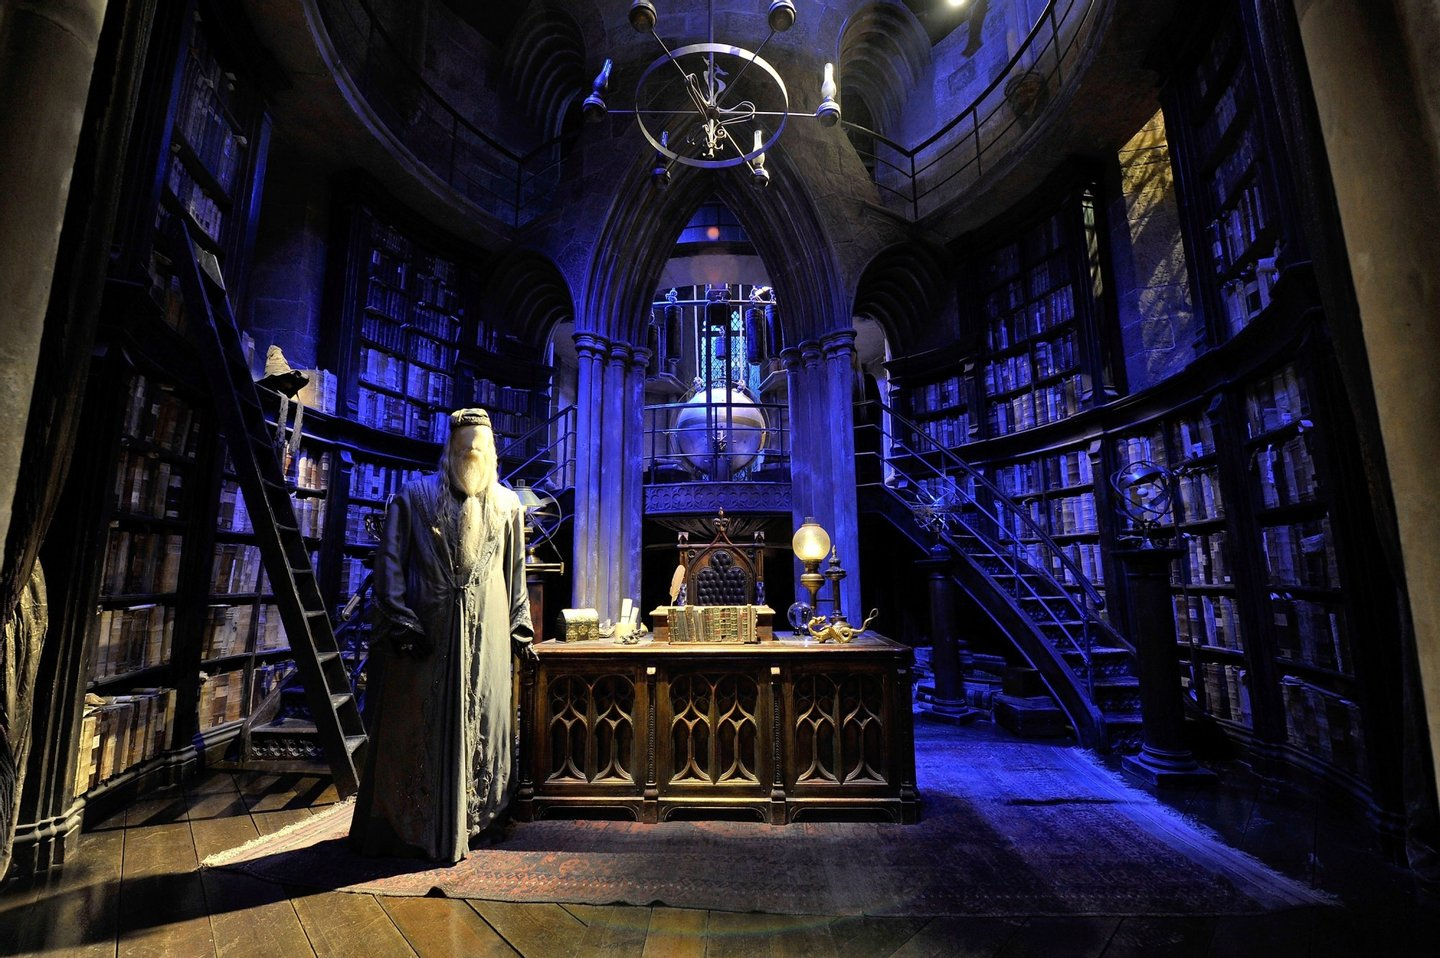 WATFORD, ENGLAND - MARCH 30:  A general view of Dumbledore's office on the set of Harry Potter at the Warner Bros. Studio Tour London - The Making of Harry Potter, at Leavesden Studios on March 30, 2012 in Watford, England  (Photo by Gareth Cattermole/Getty Images)